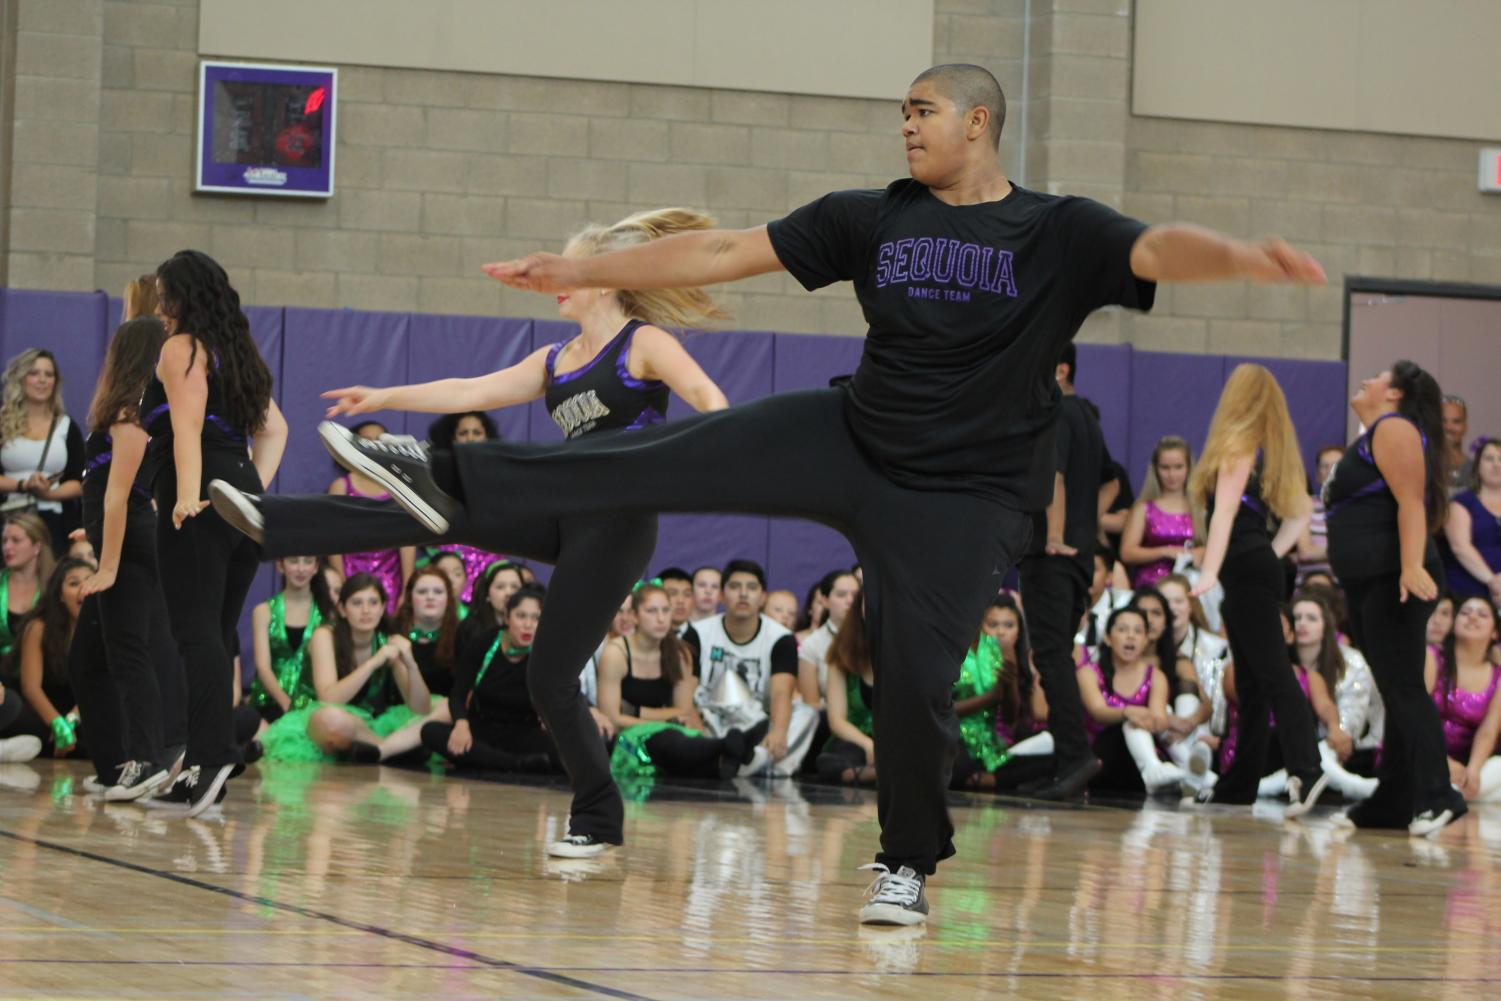 Dance team disbands as SAFE funding ends, finds other outlets